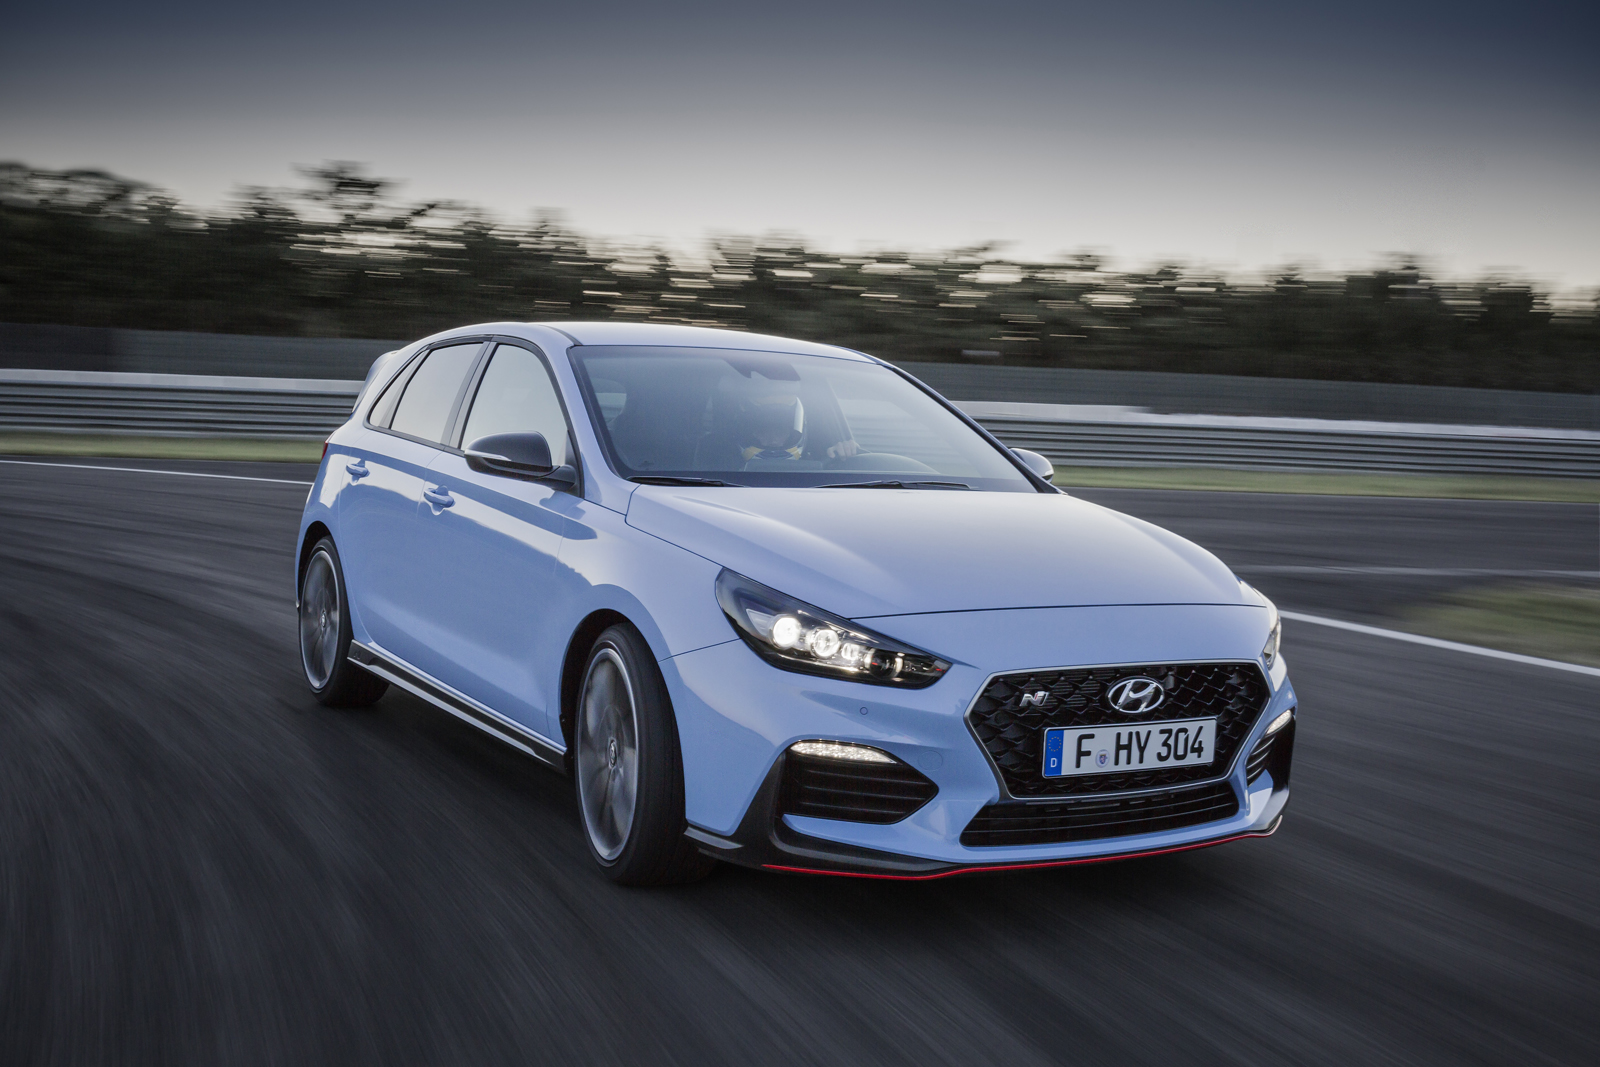 2018 hyundai i30 n enters the hot hatch arena with 270 hp news. Black Bedroom Furniture Sets. Home Design Ideas